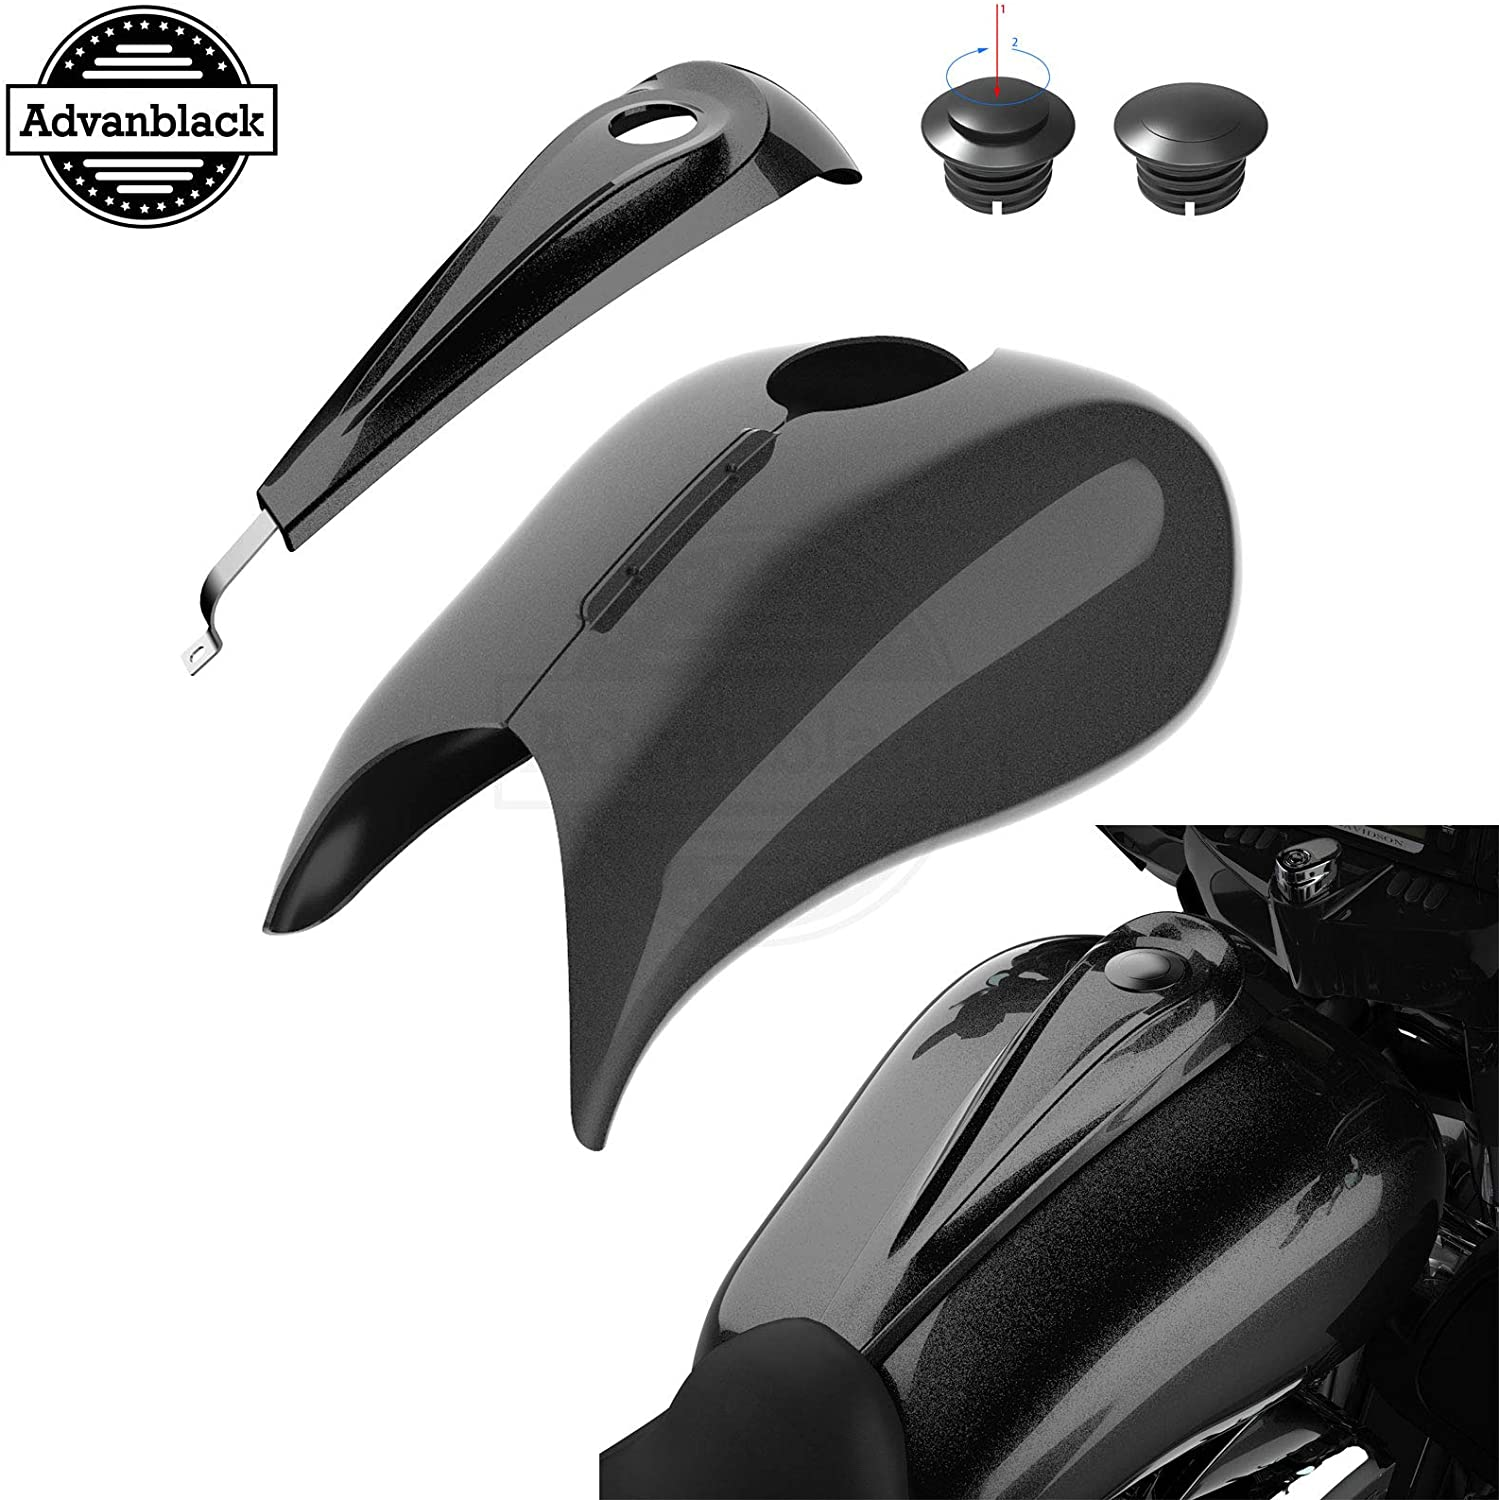 Advanblack Stretched Tank Covers with Dash Console Fit for Harley Touring Street Glide Road Glide 2014 2015 2016 2017 2018 2019 2020 (Black Quartz)